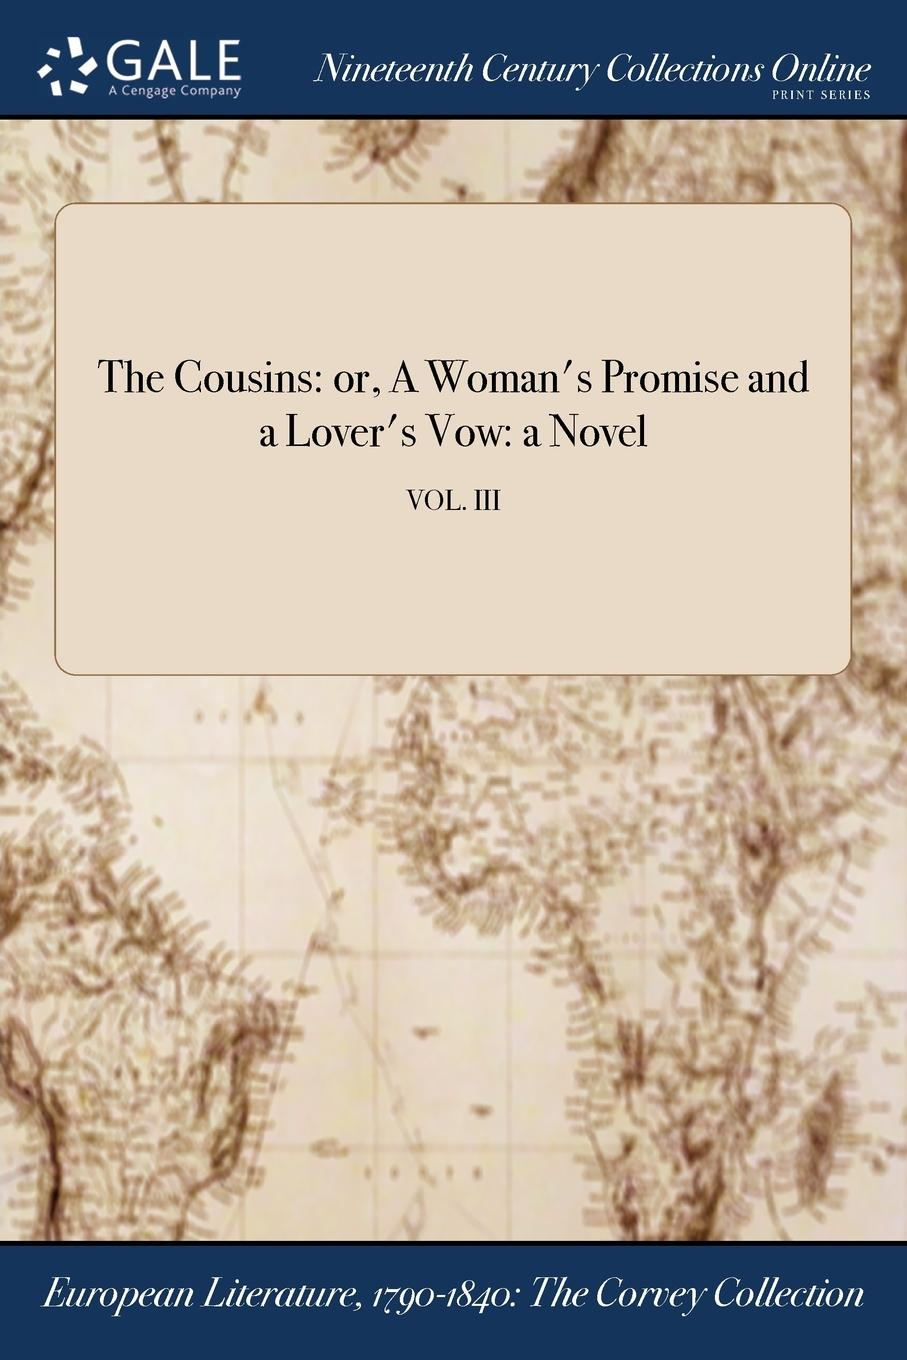 The Cousins. or, A Woman.s Promise and a Lover.s Vow: a Novel; VOL. III